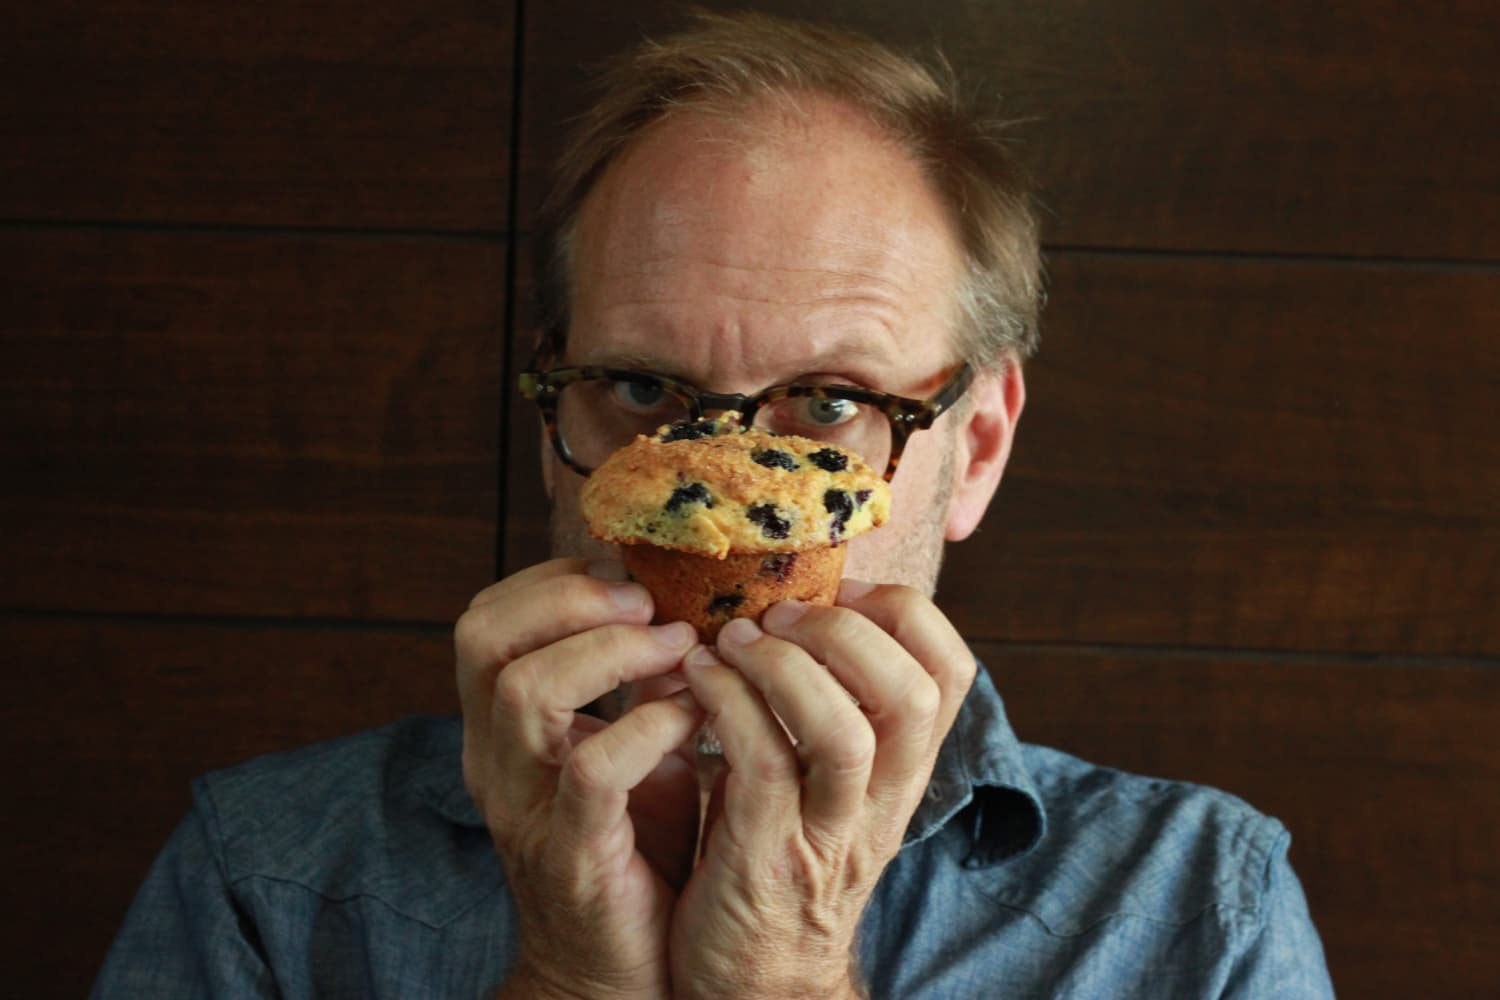 I Worked with Alton Brown for 10 Years. Here Are 5 Things I Learned